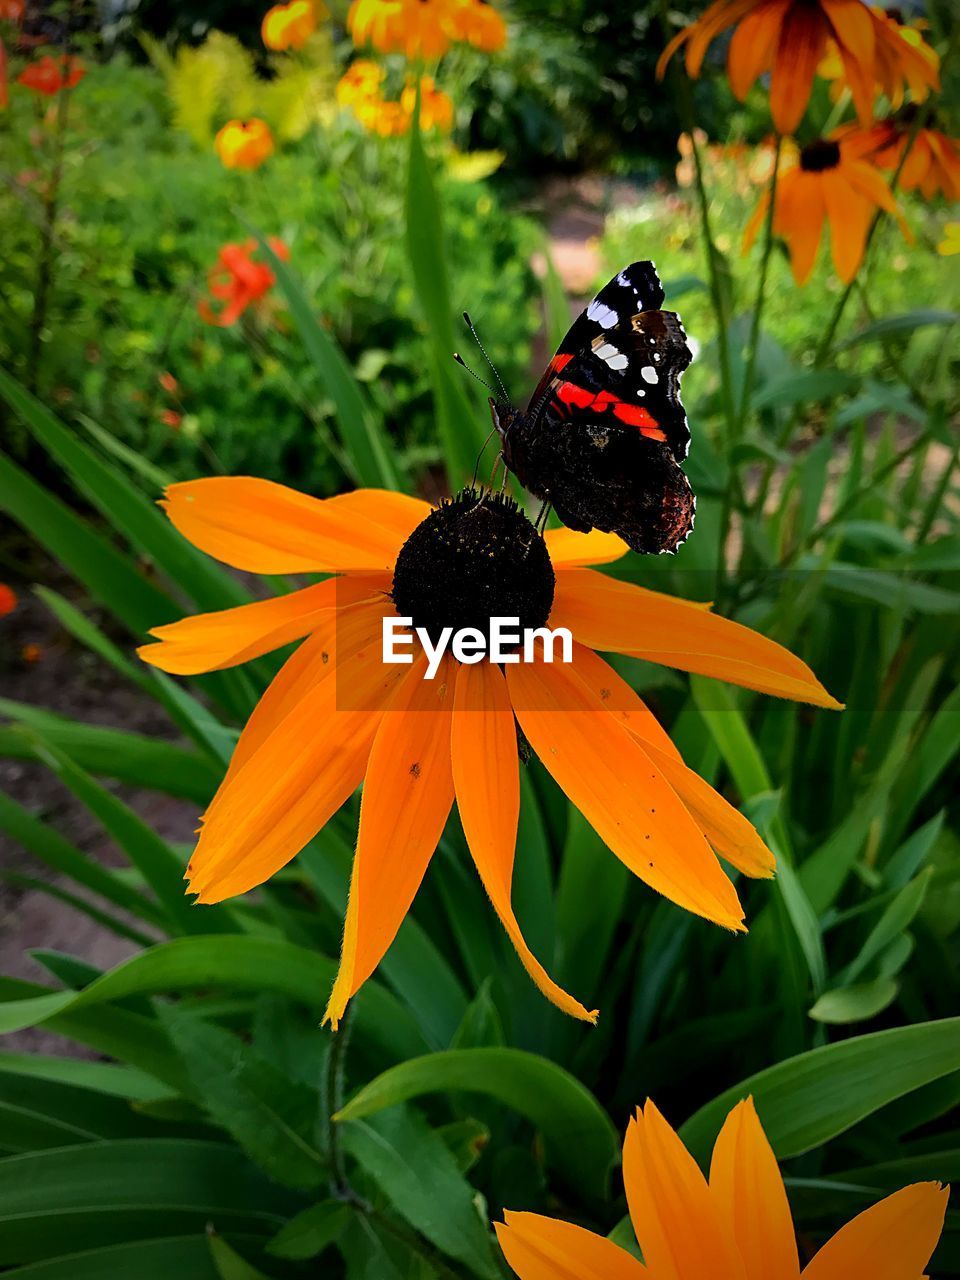 flowering plant, flower, beauty in nature, plant, petal, fragility, vulnerability, growth, flower head, freshness, invertebrate, inflorescence, animal themes, insect, animal, one animal, coneflower, close-up, nature, animal wildlife, butterfly - insect, animal wing, no people, pollination, pollen, outdoors, butterfly